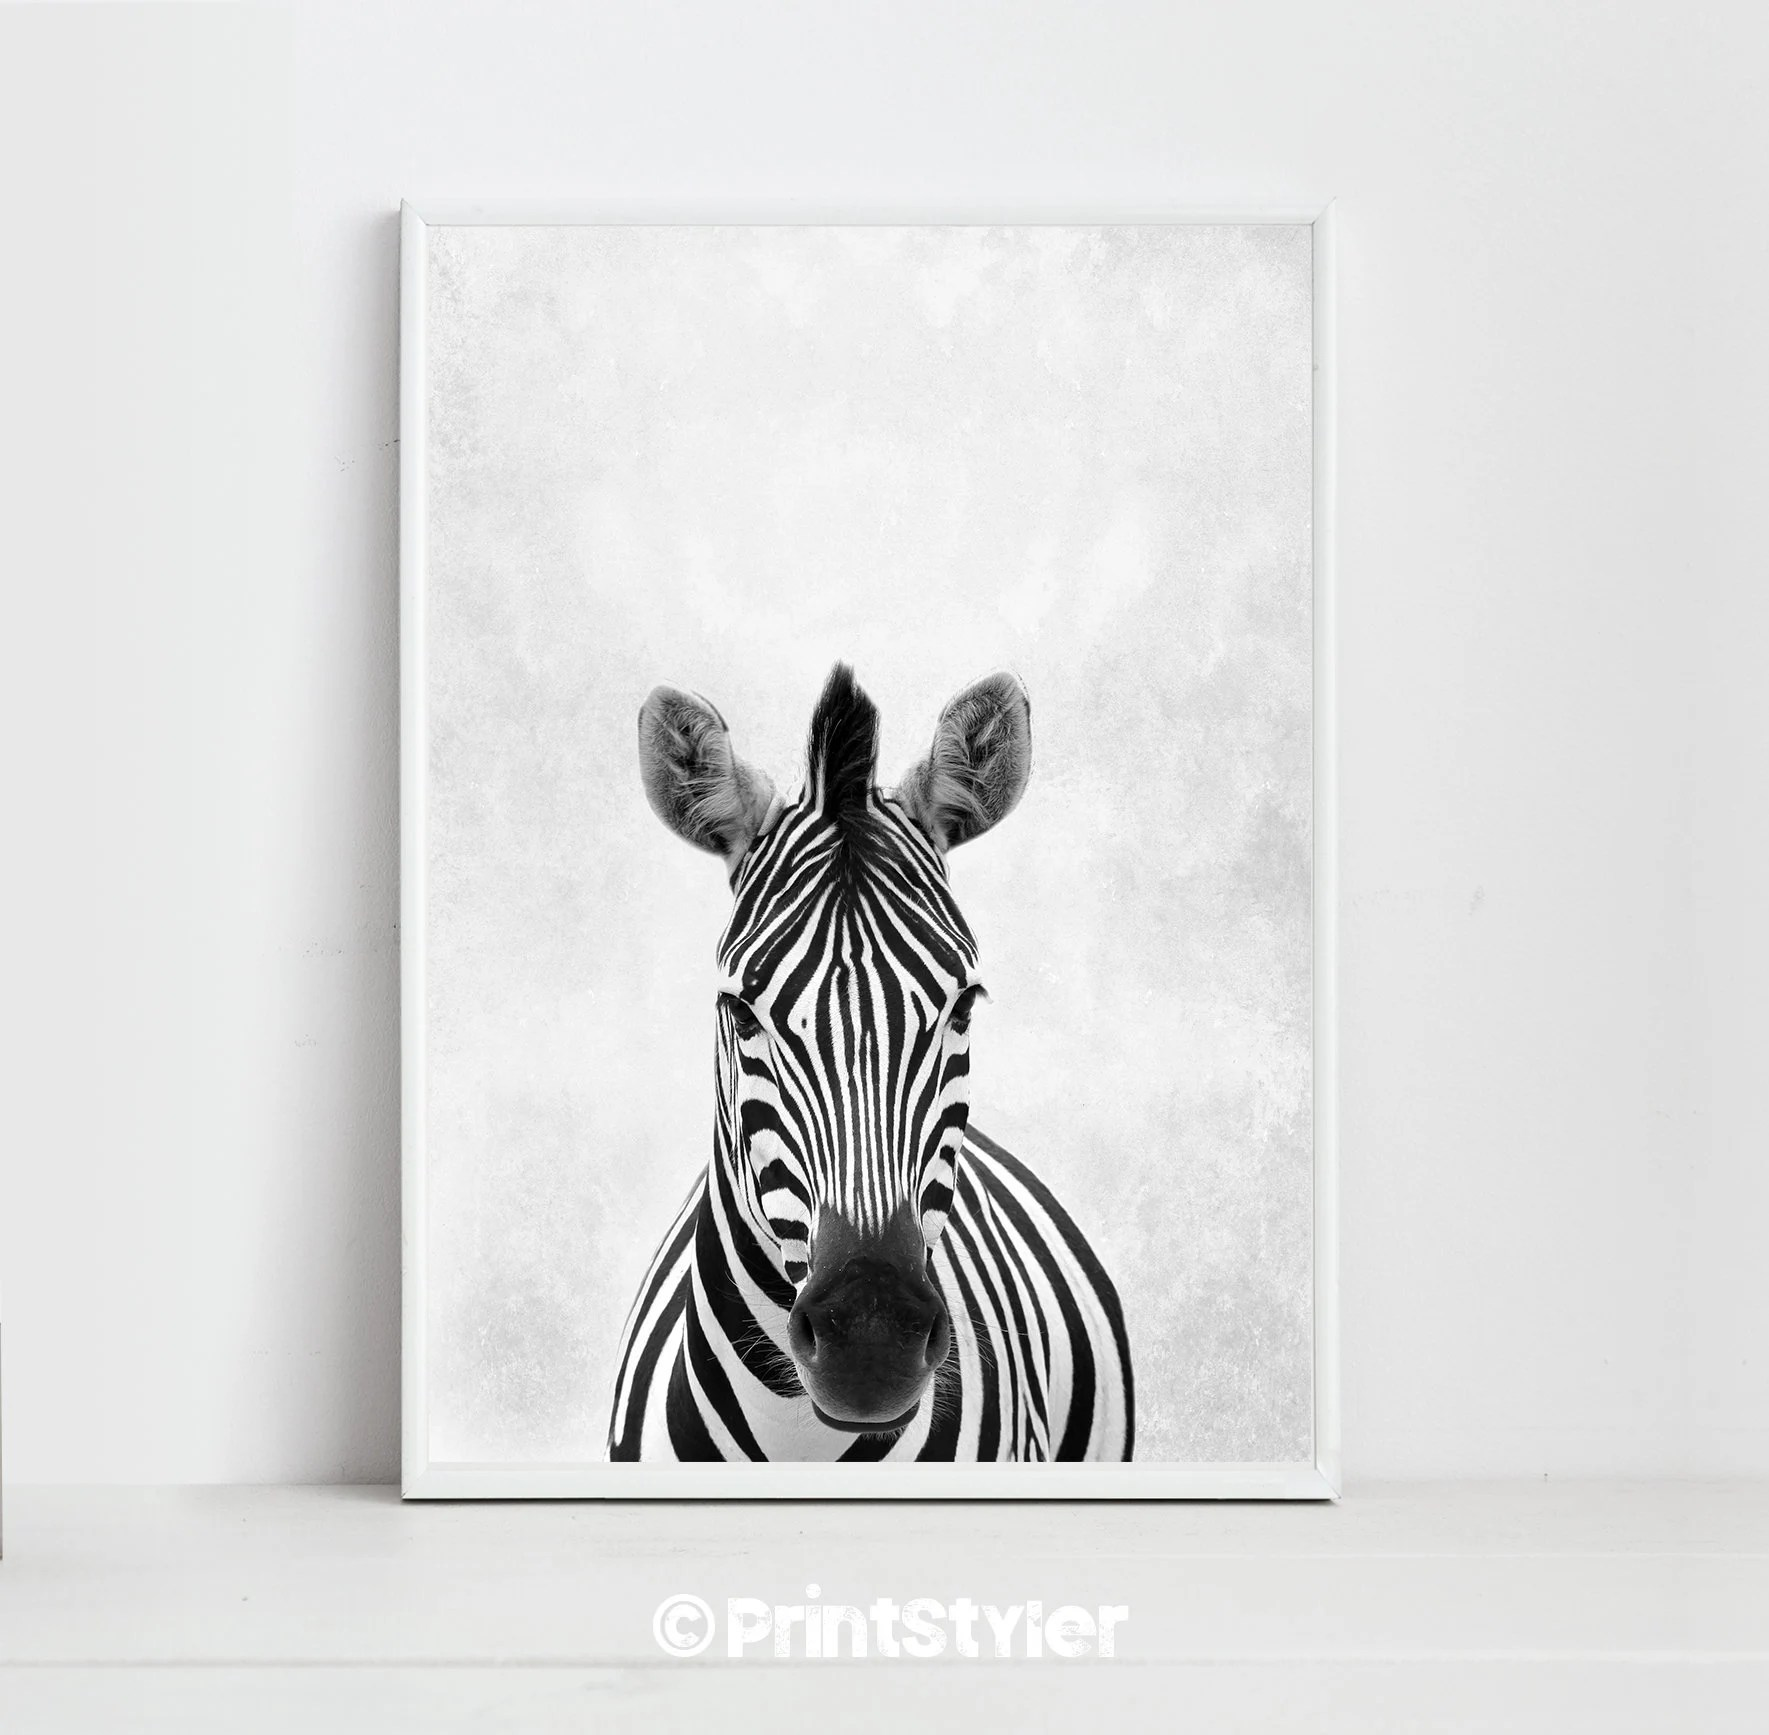 Zebra Print Zebra Art Zebra Poster Animal Prints